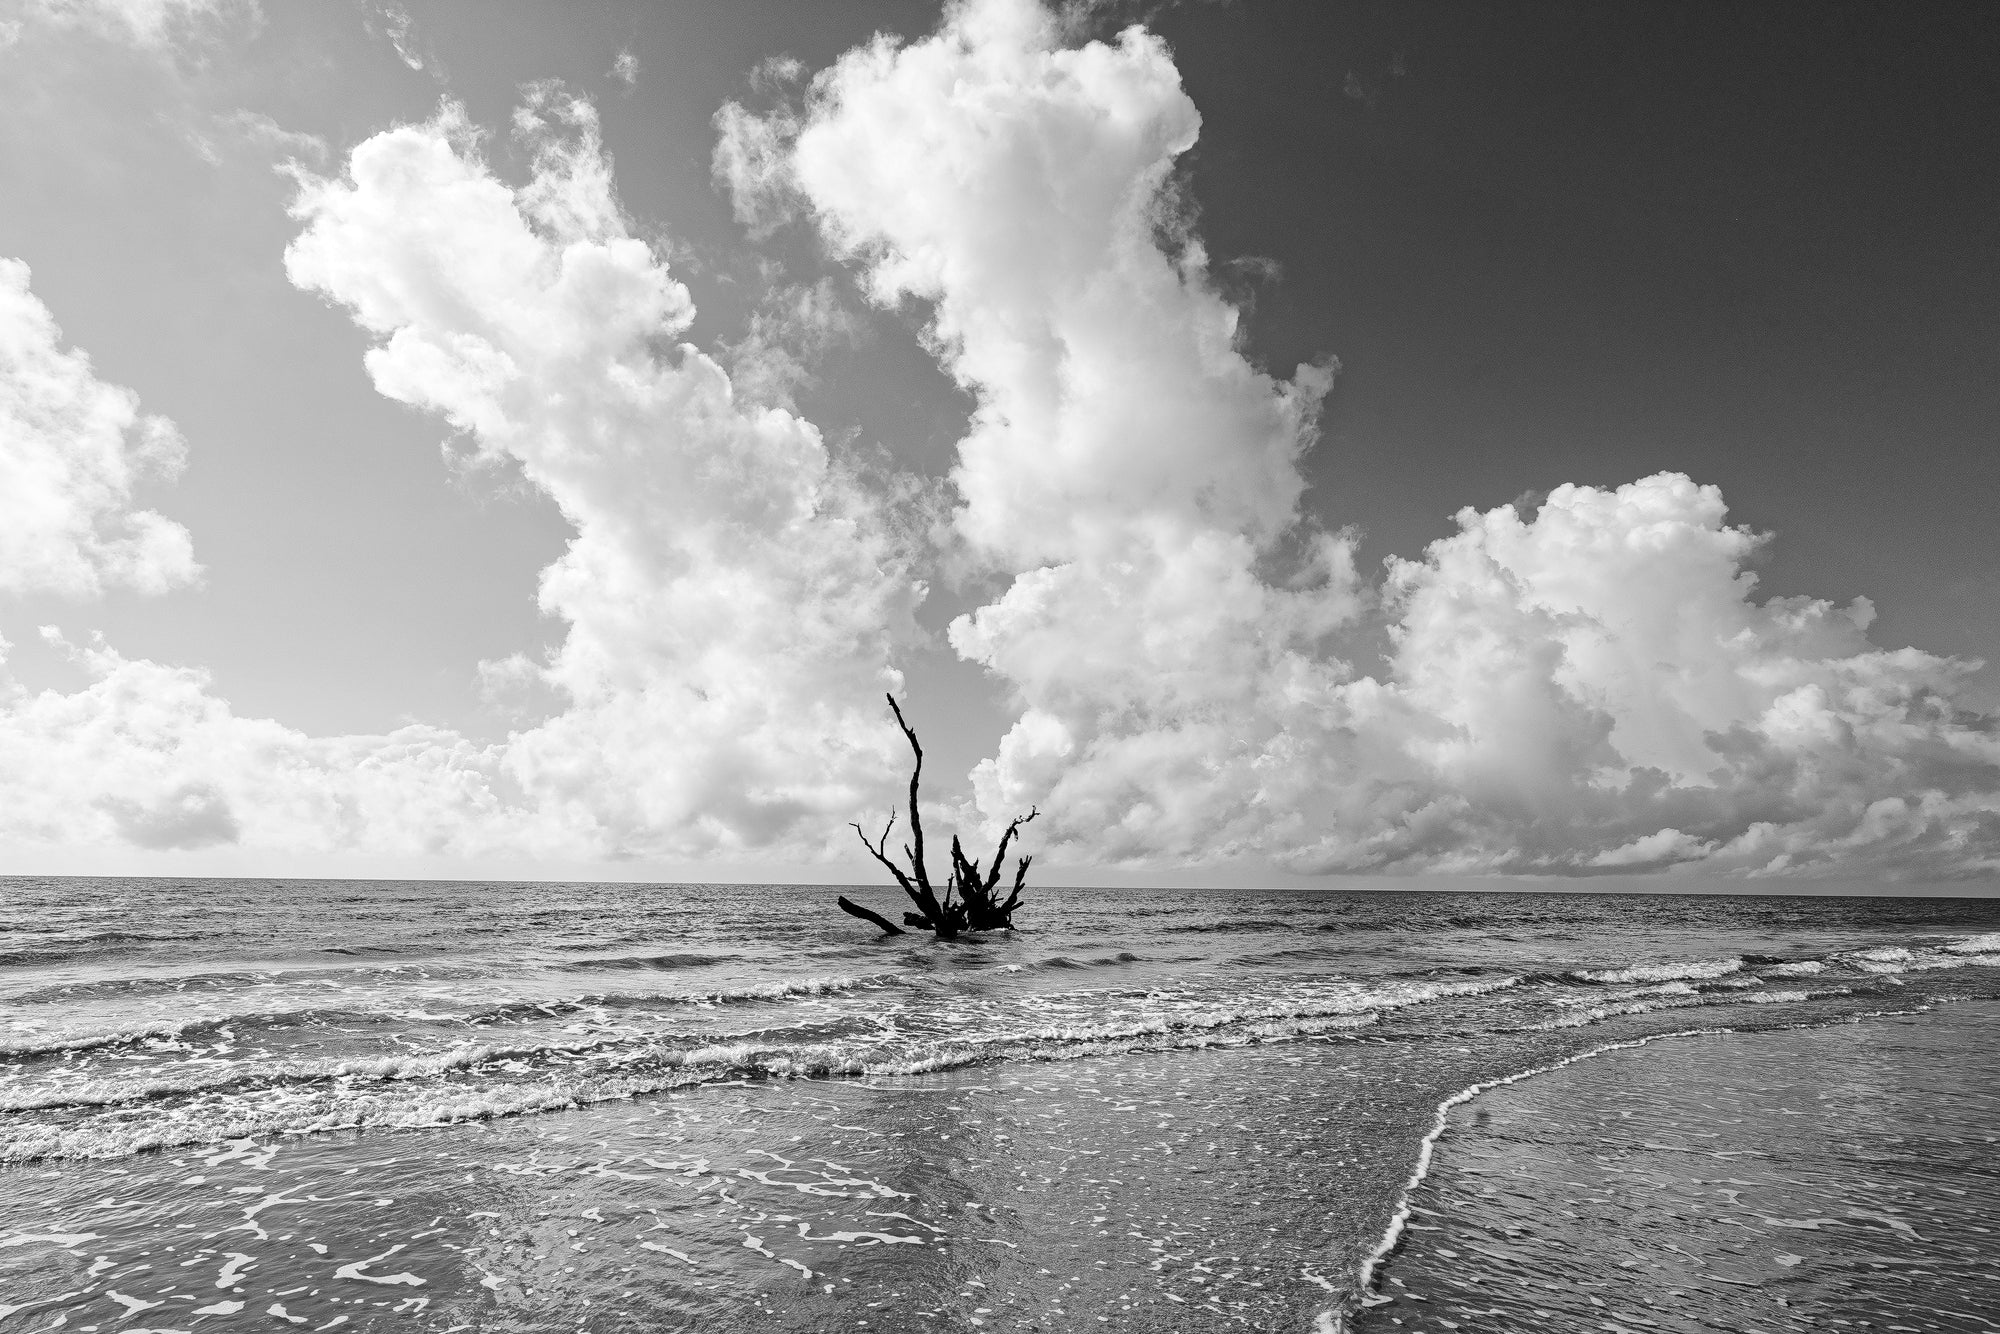 Driftwood in the Ocean Looks like a Sea Monster - Black and White Photograph by Keith Dotson. Buy a print.